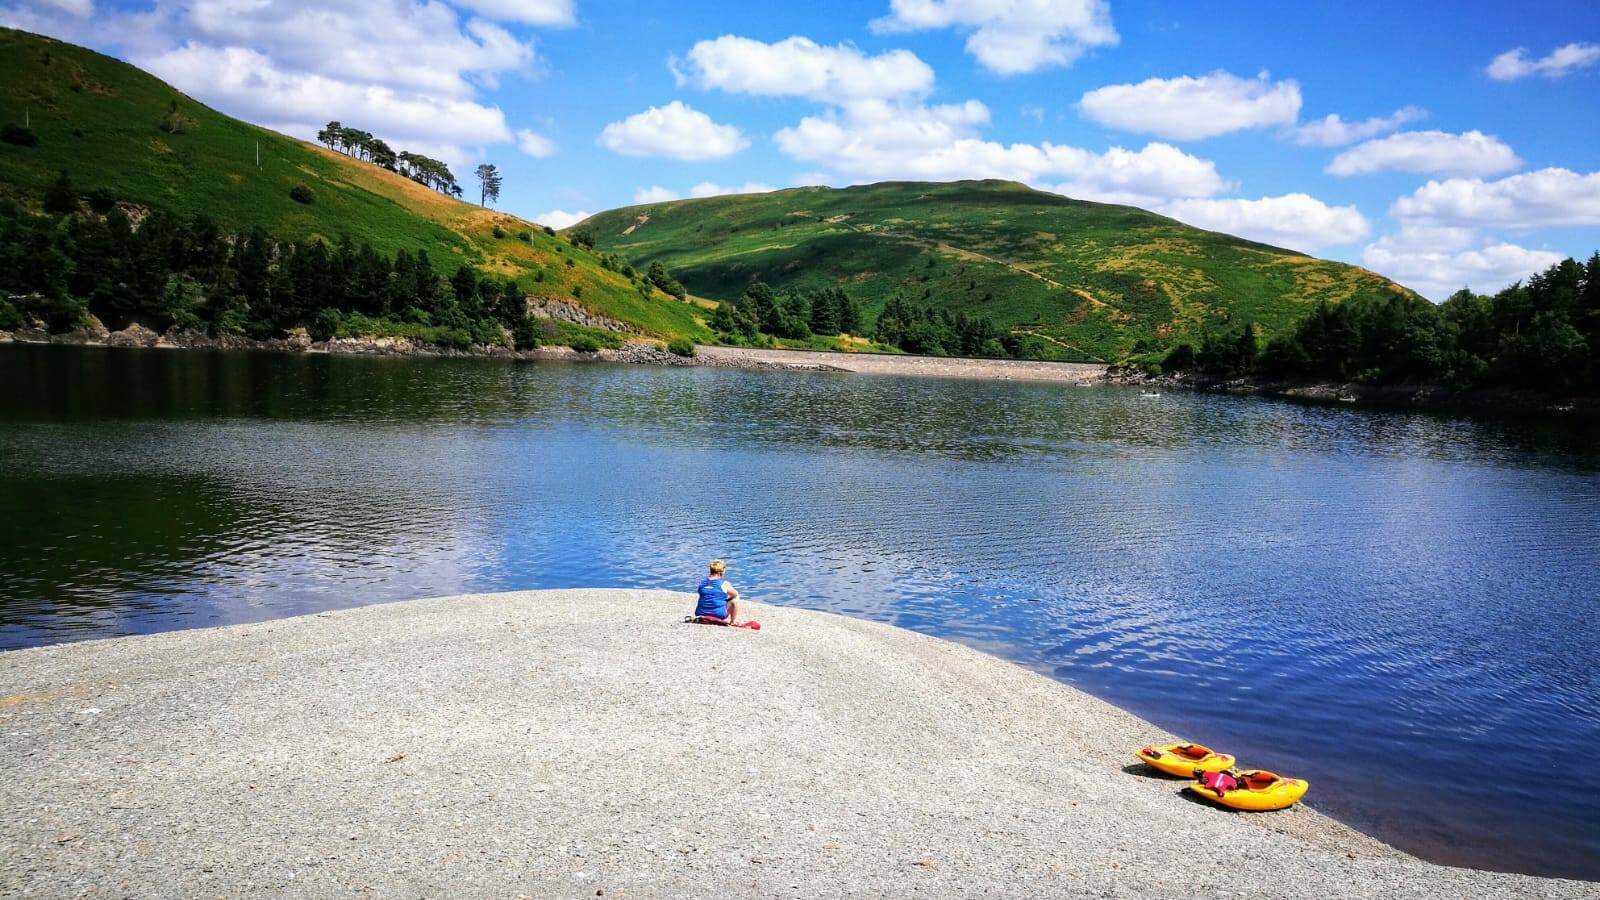 Kayaking and canoing at Hafren Forest Bunkhouse